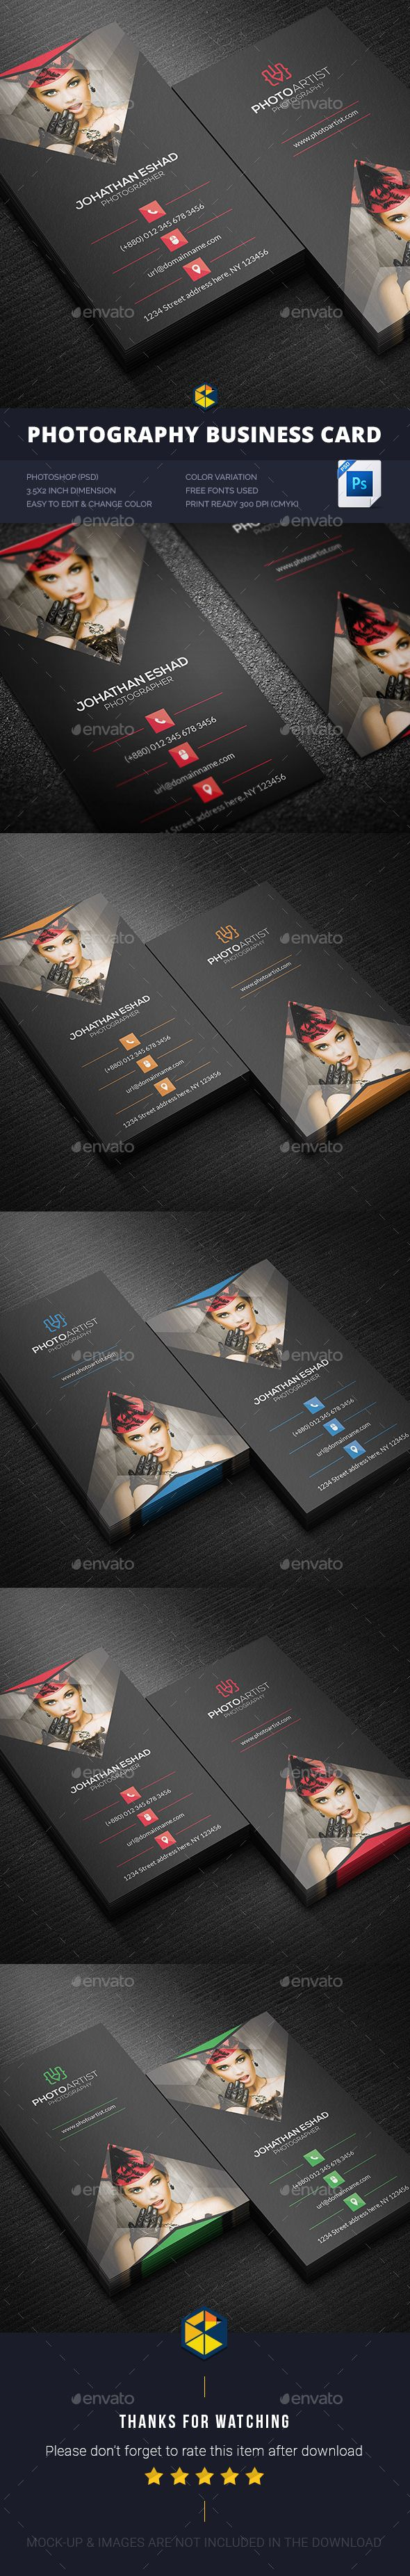 Photography Business Card Design Template Business Cards Print - Business card print template psd